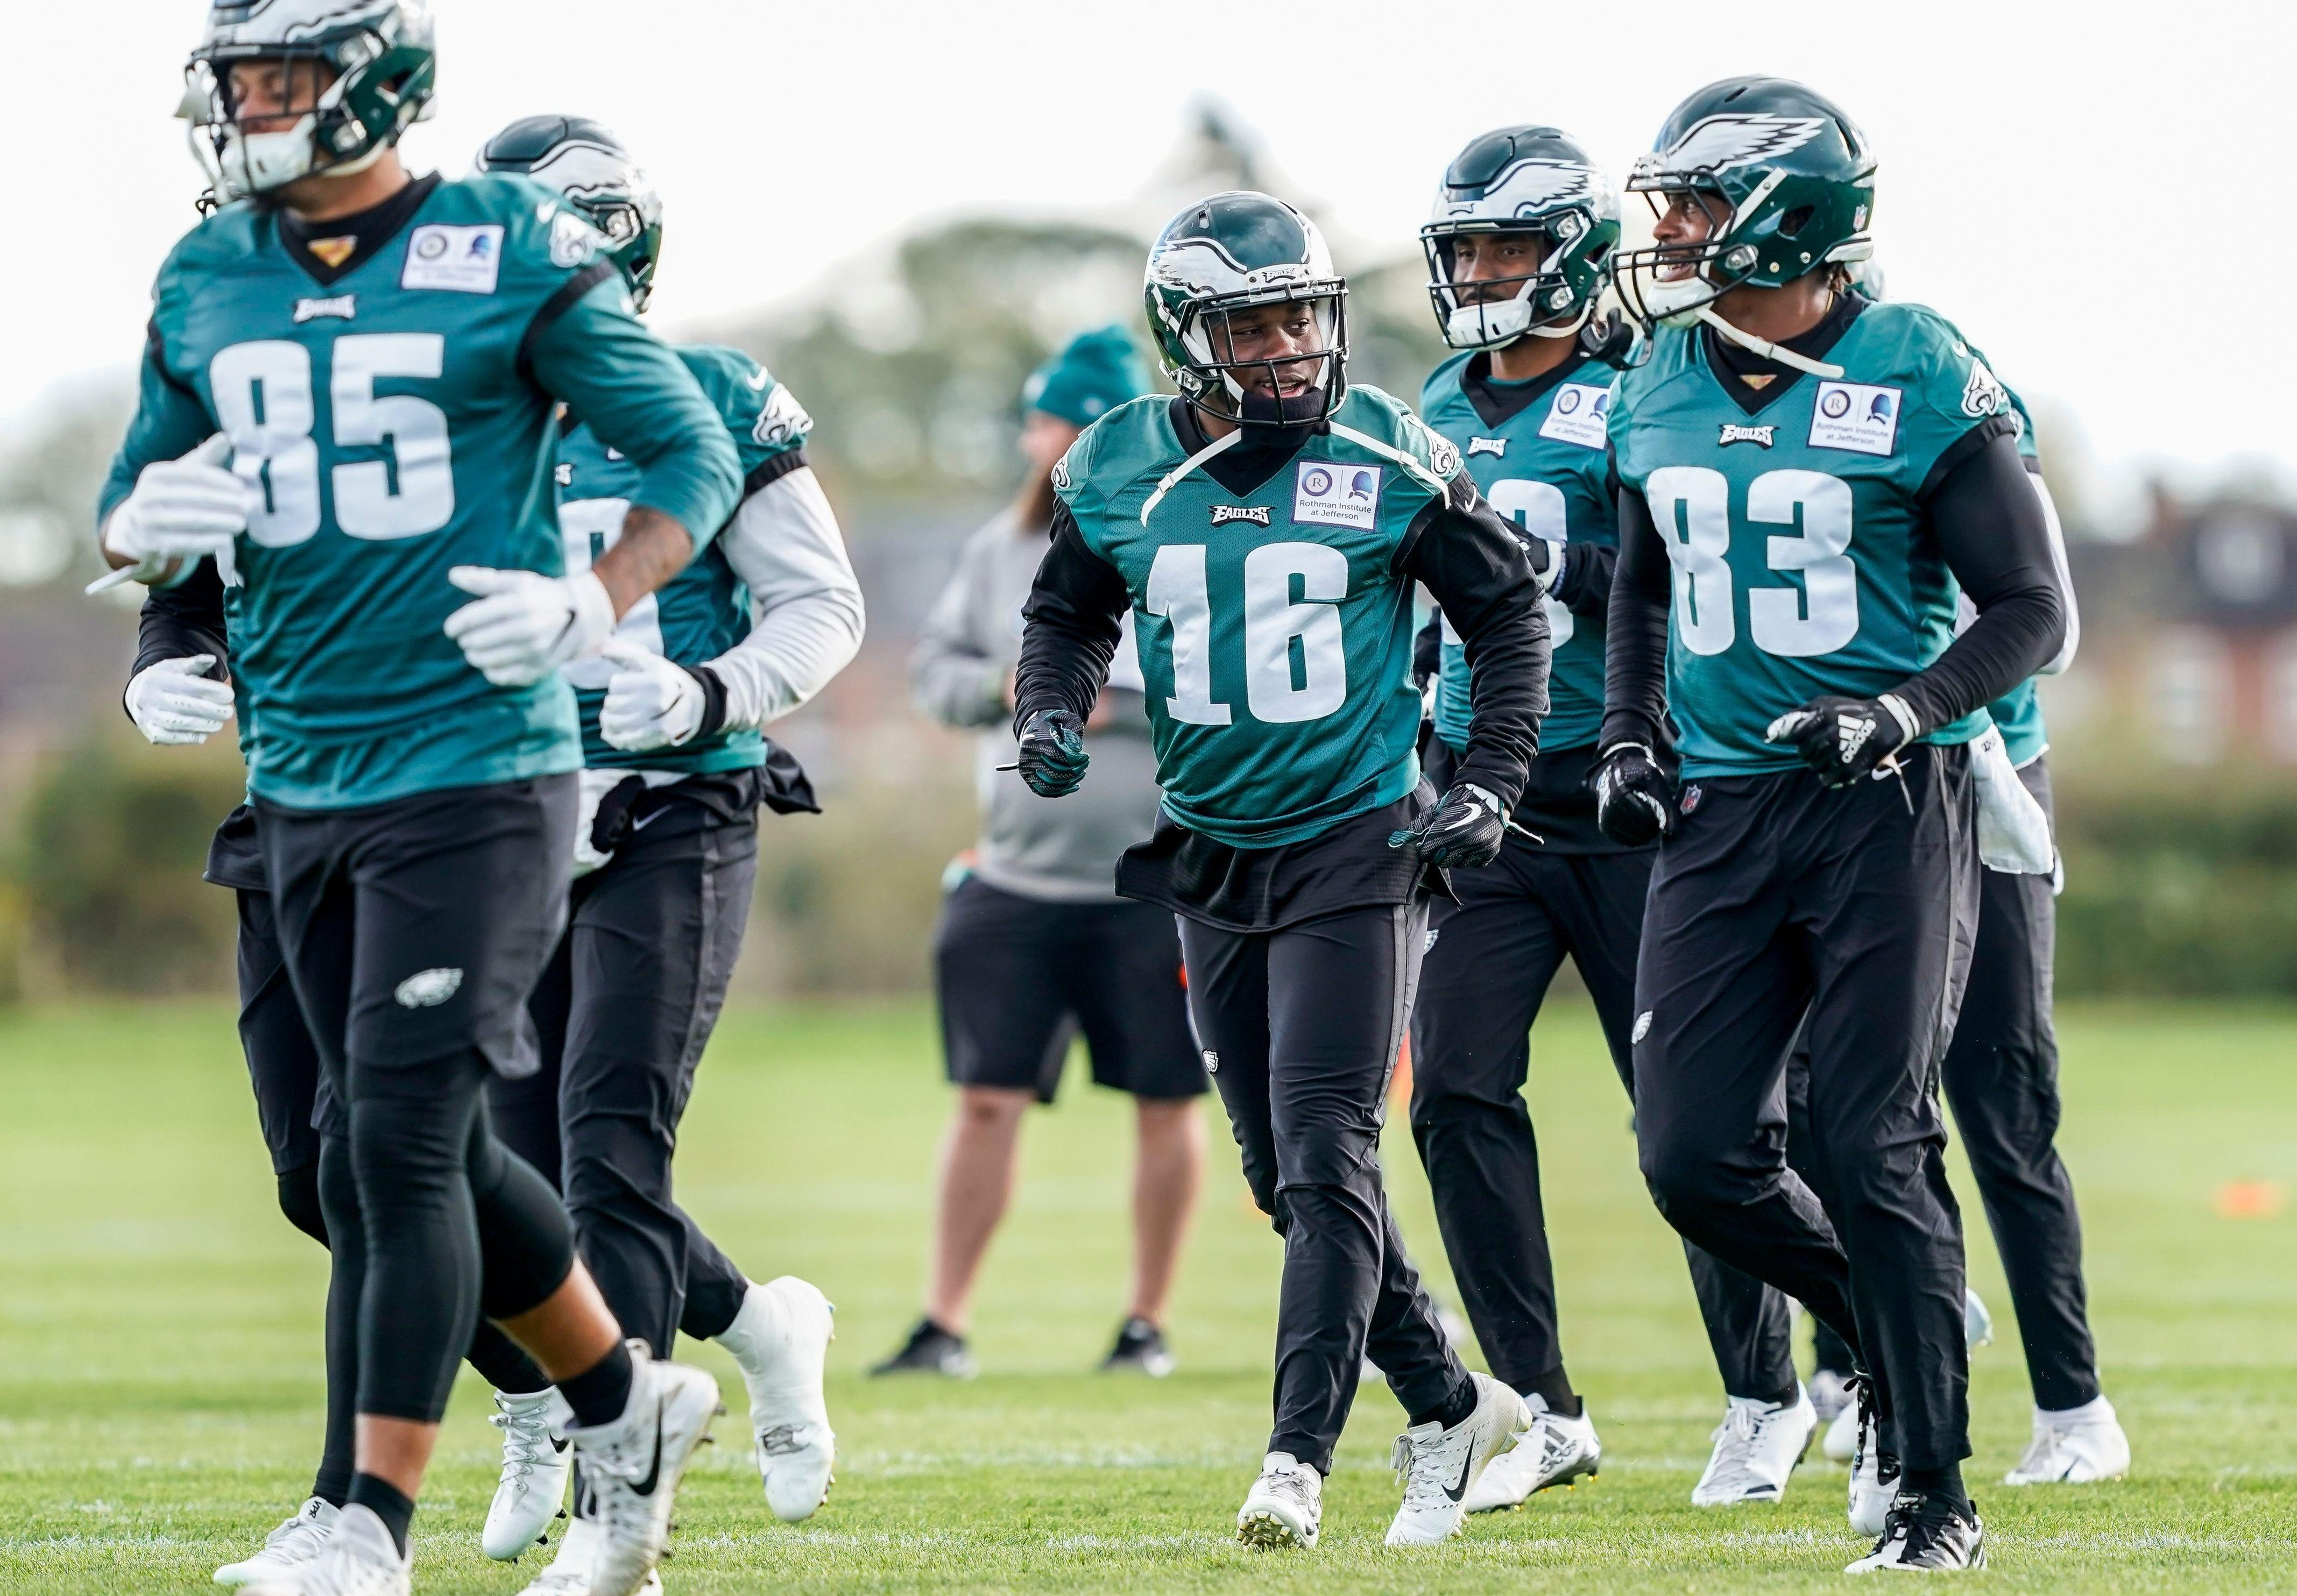 Philadelphia Eagles trained in London on Friday ahead of the Wembley clash